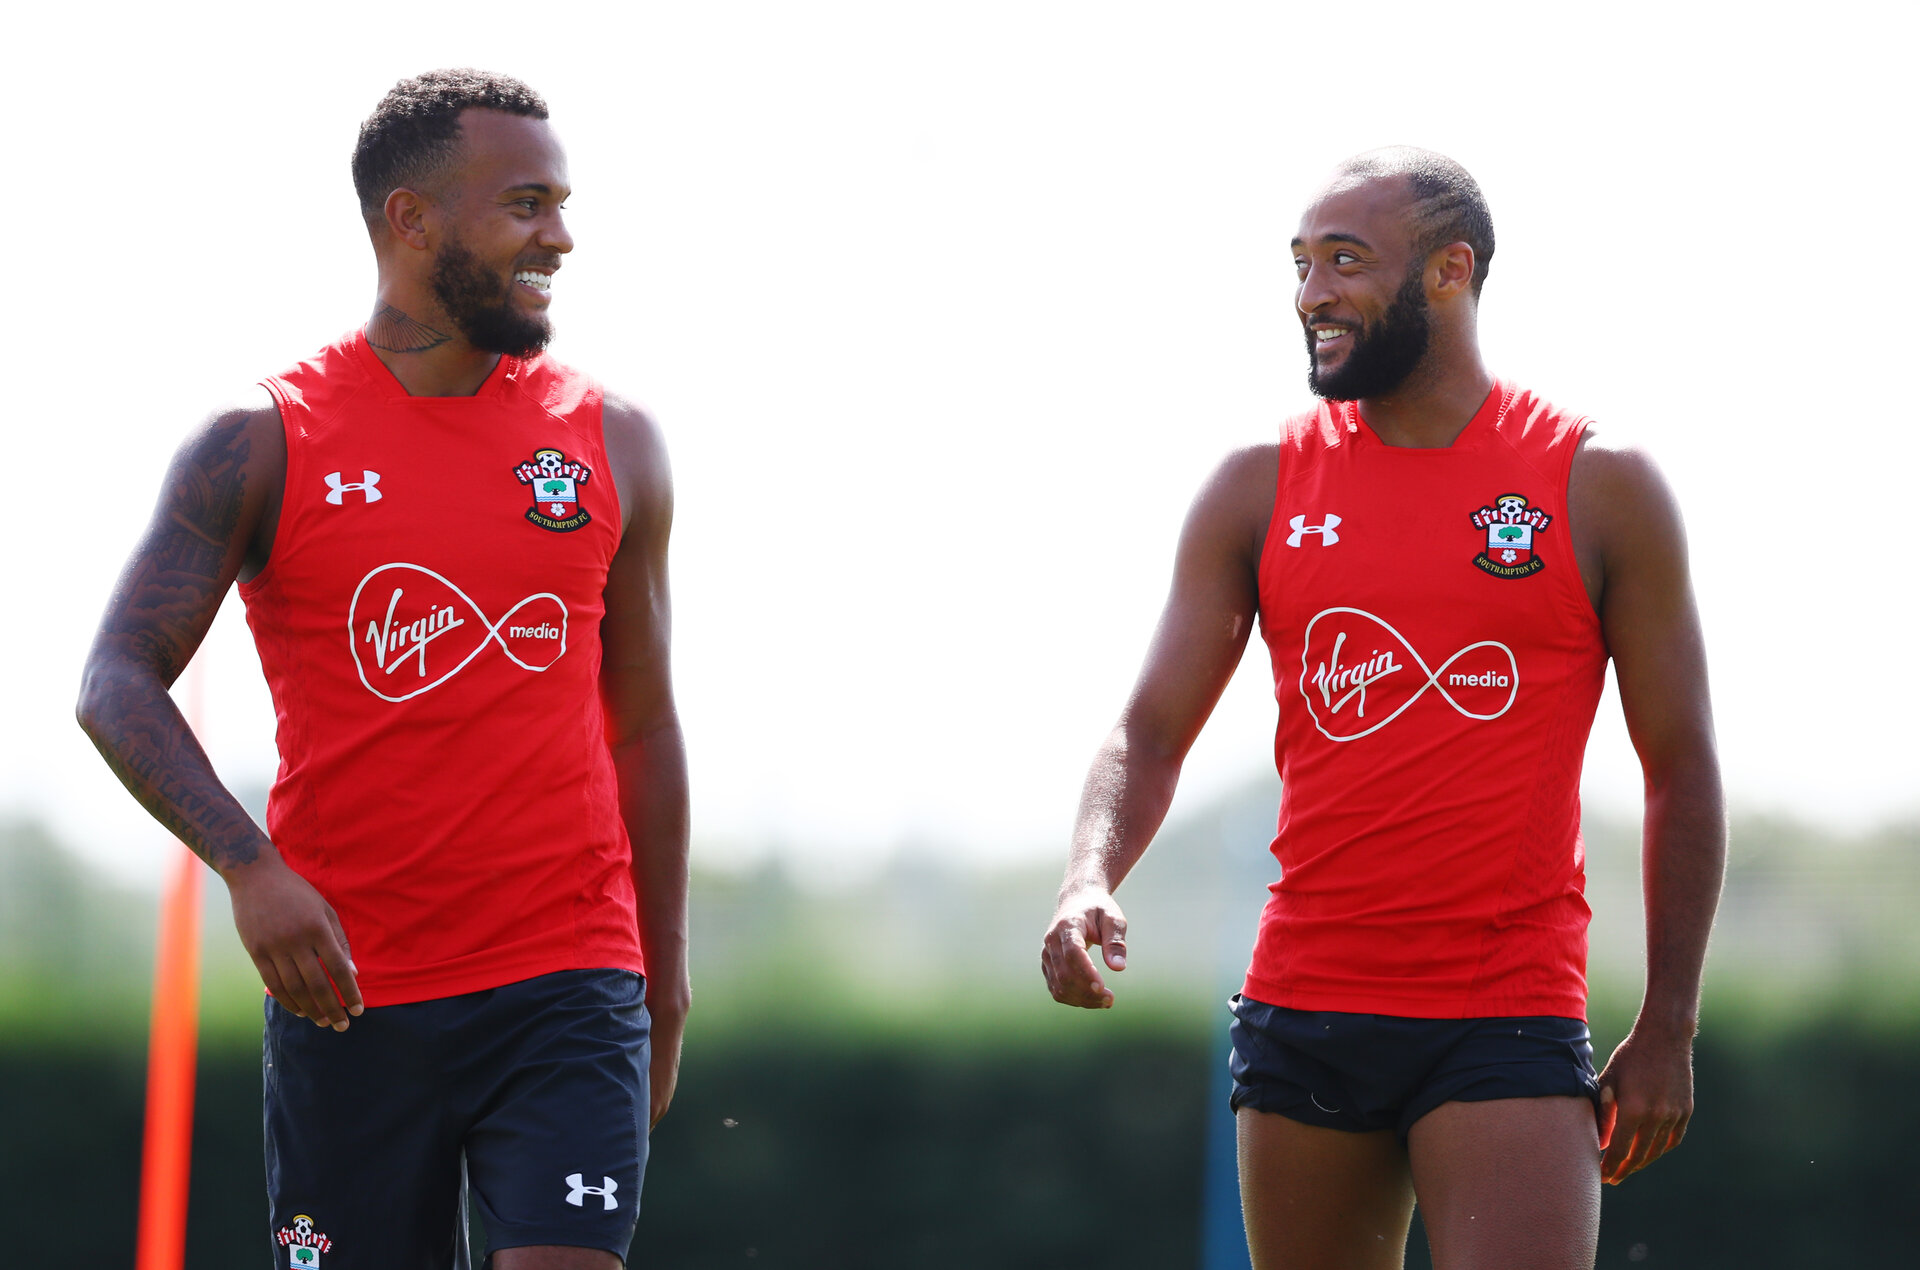 SOUTHAMPTON, ENGLAND - AUGUST 07: Ryan Bertrand(L) and Nathan Redmond during a Southampton FC training session at the Staplewood Campus on August 7, 2018 in Southampton, England. (Photo by Matt Watson/Southampton FC via Getty Images)